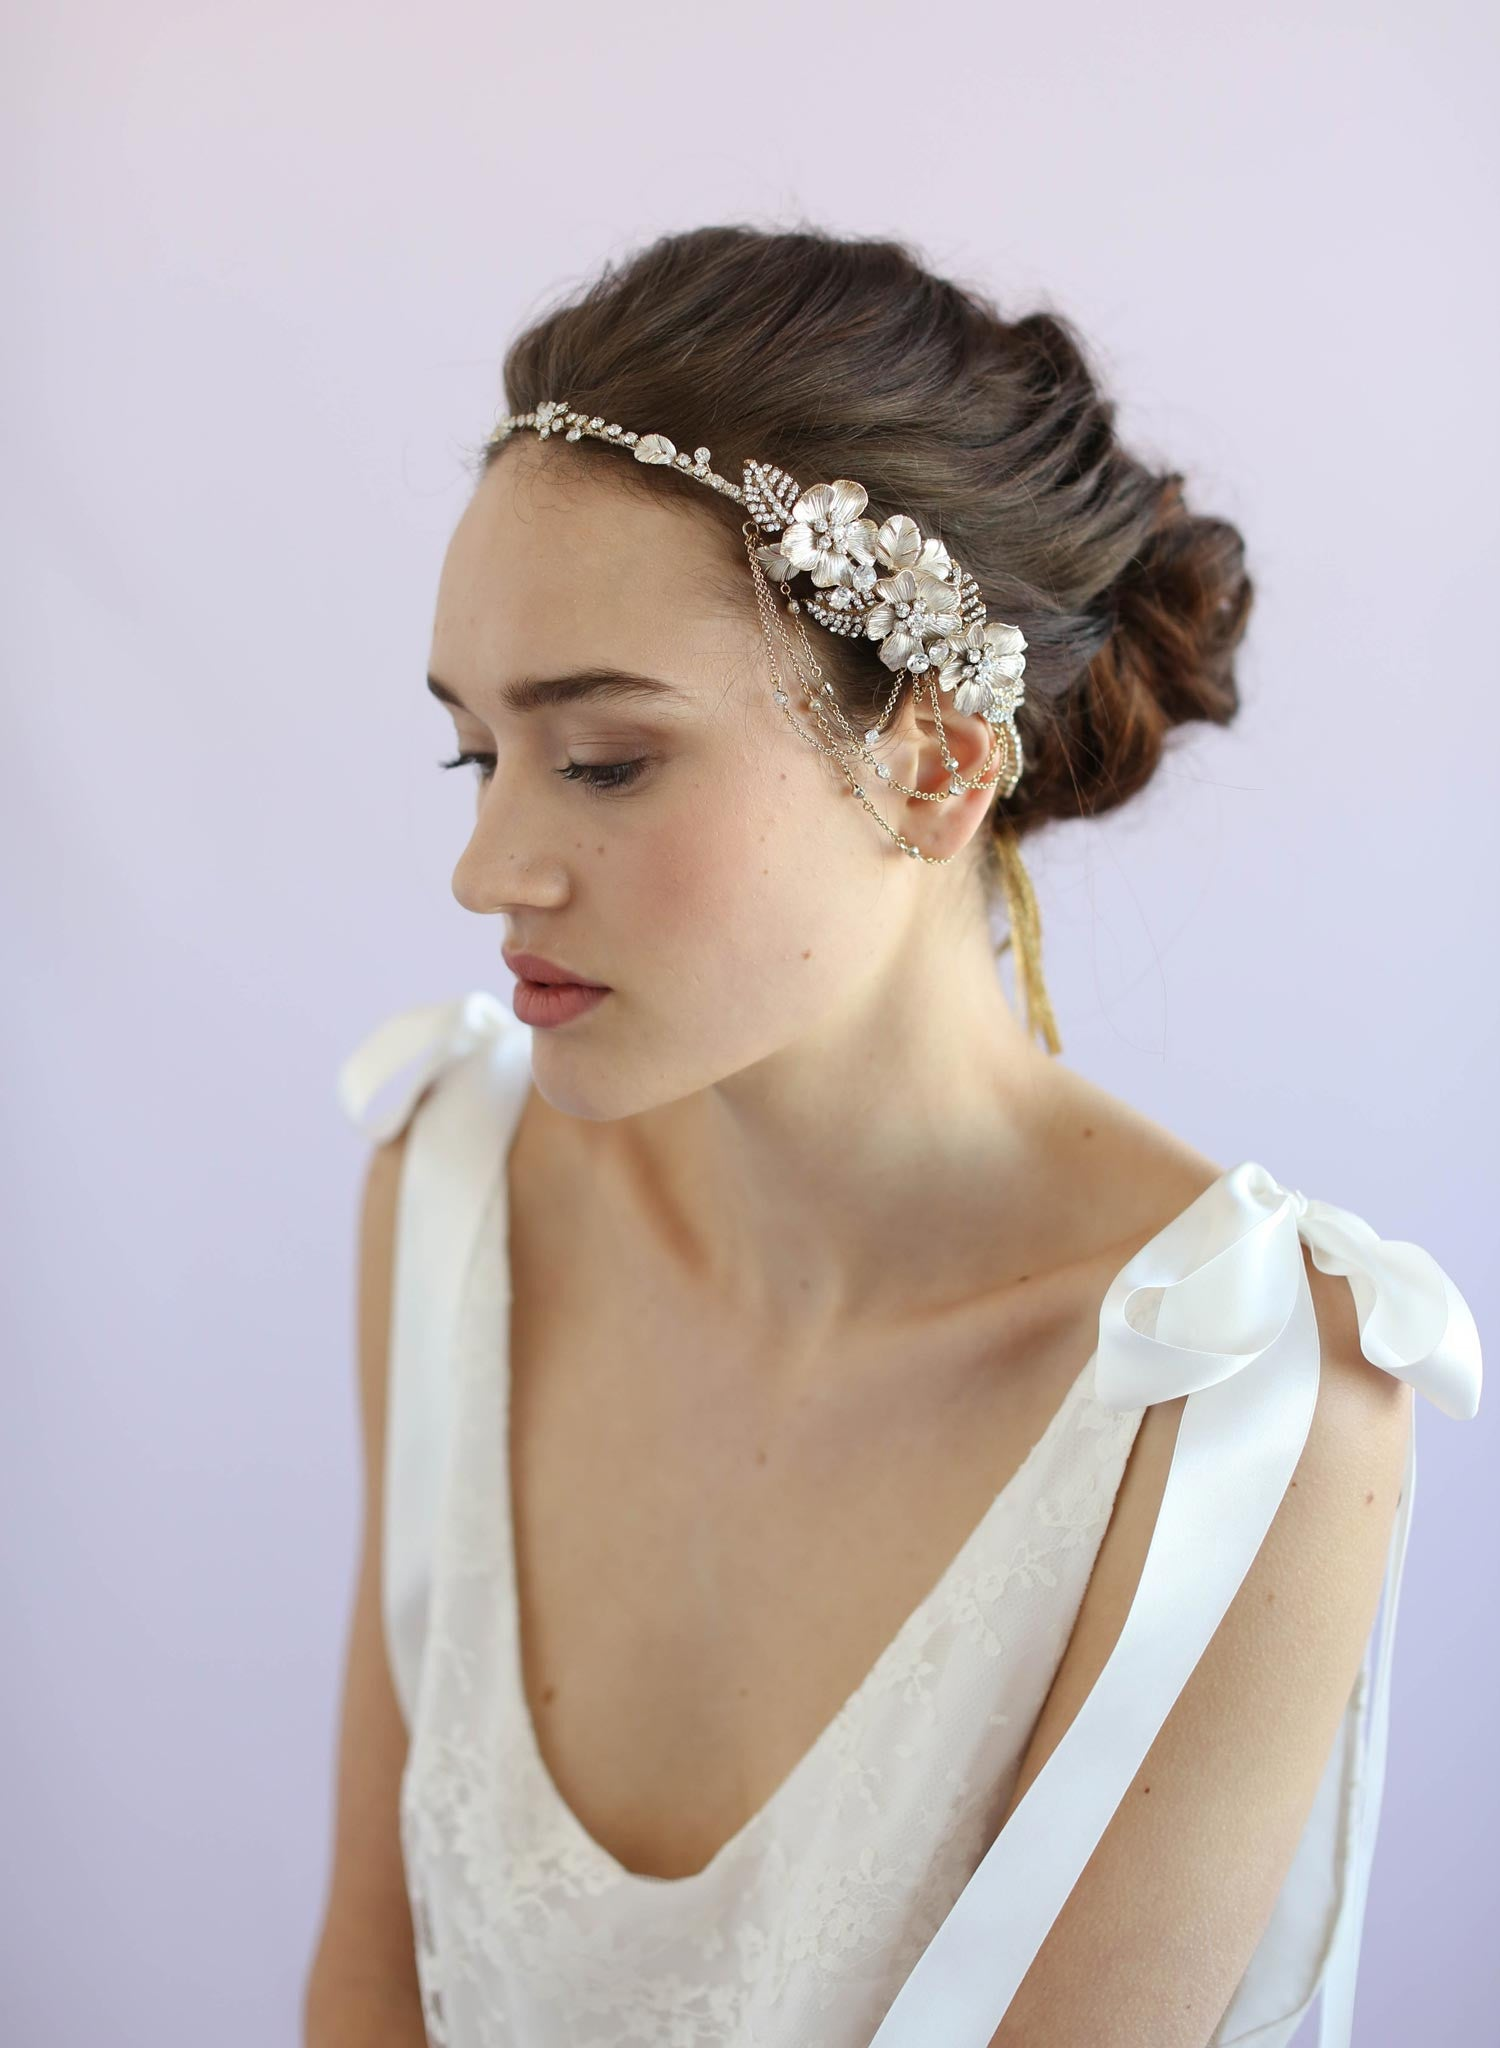 Asymmetrical floral and crystal swag headpiece - Style #614